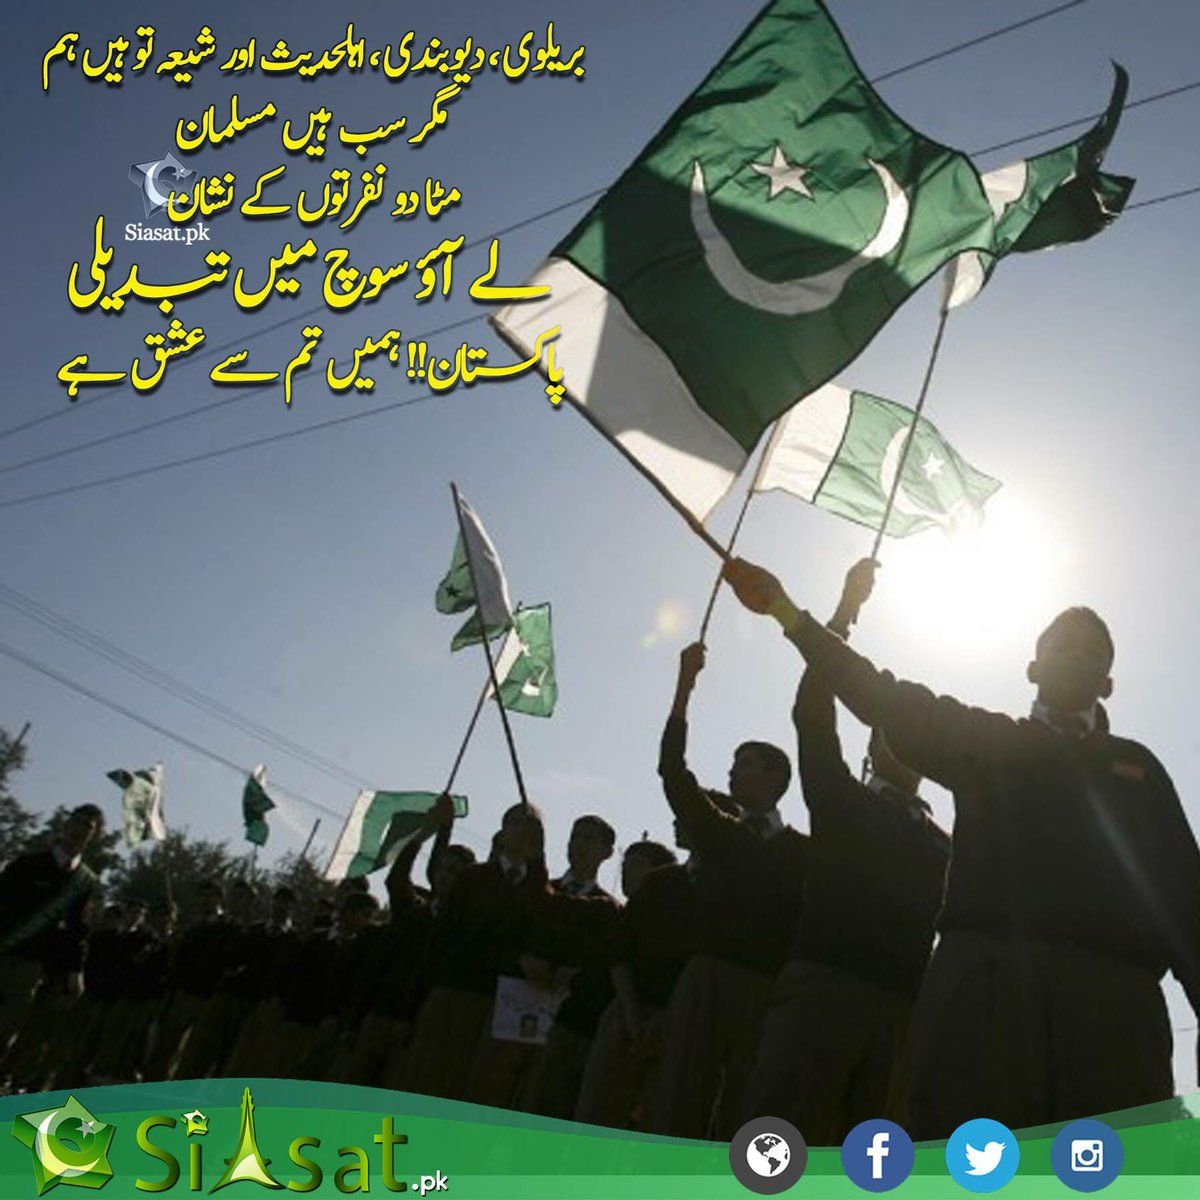 united we stand divided we fall #pakistan #parachinar<br>http://pic.twitter.com/XKk2lqLCj0